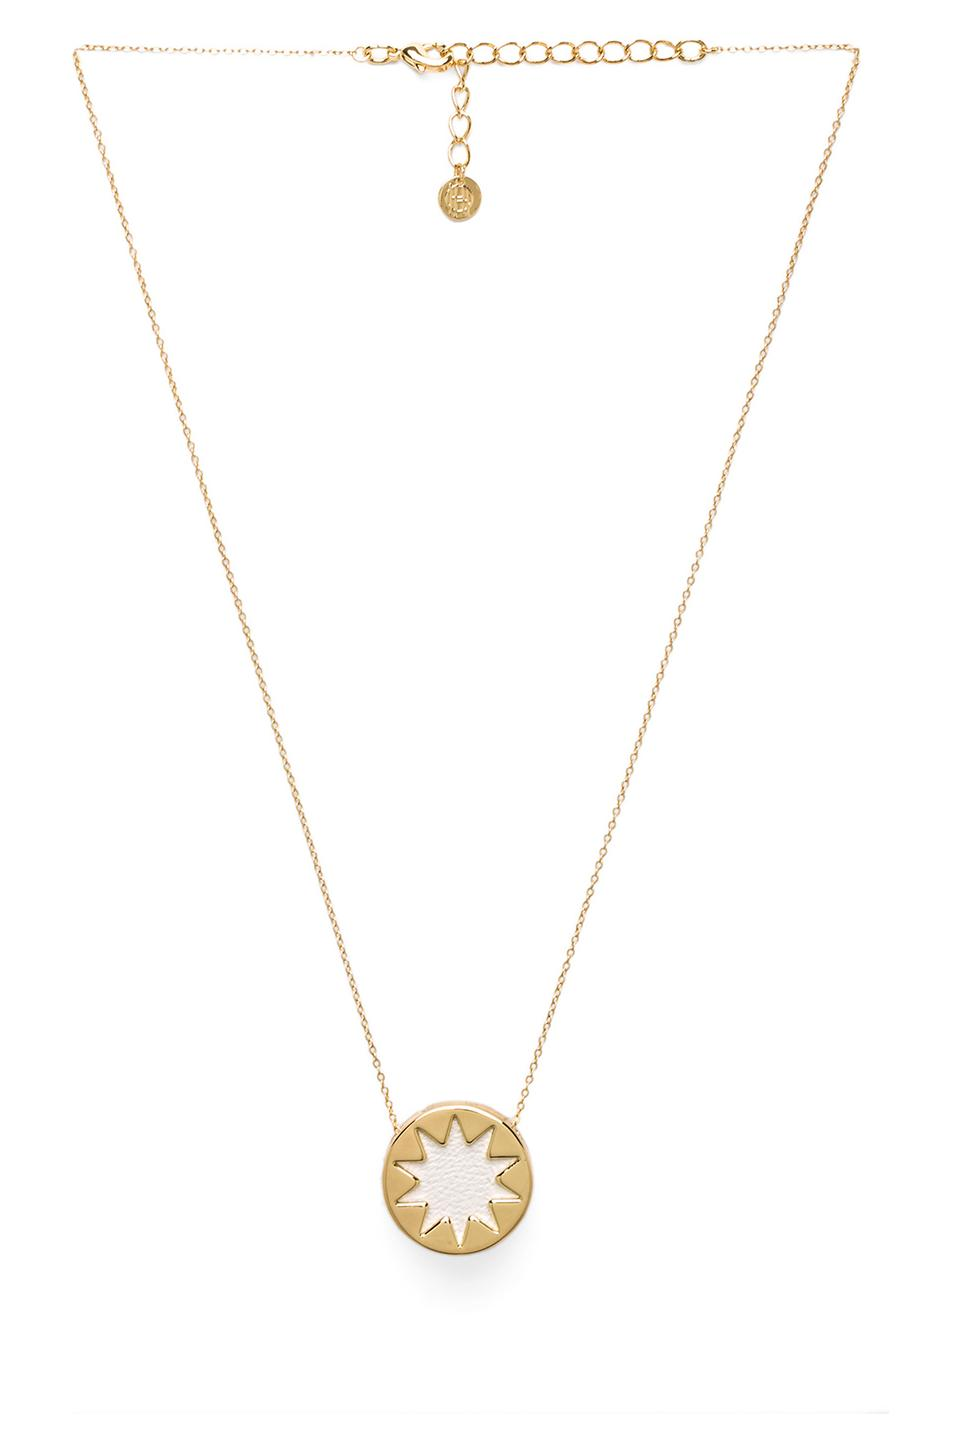 House of Harlow 1960 House of Harlow Mini Sunburst Pendant Necklace in White